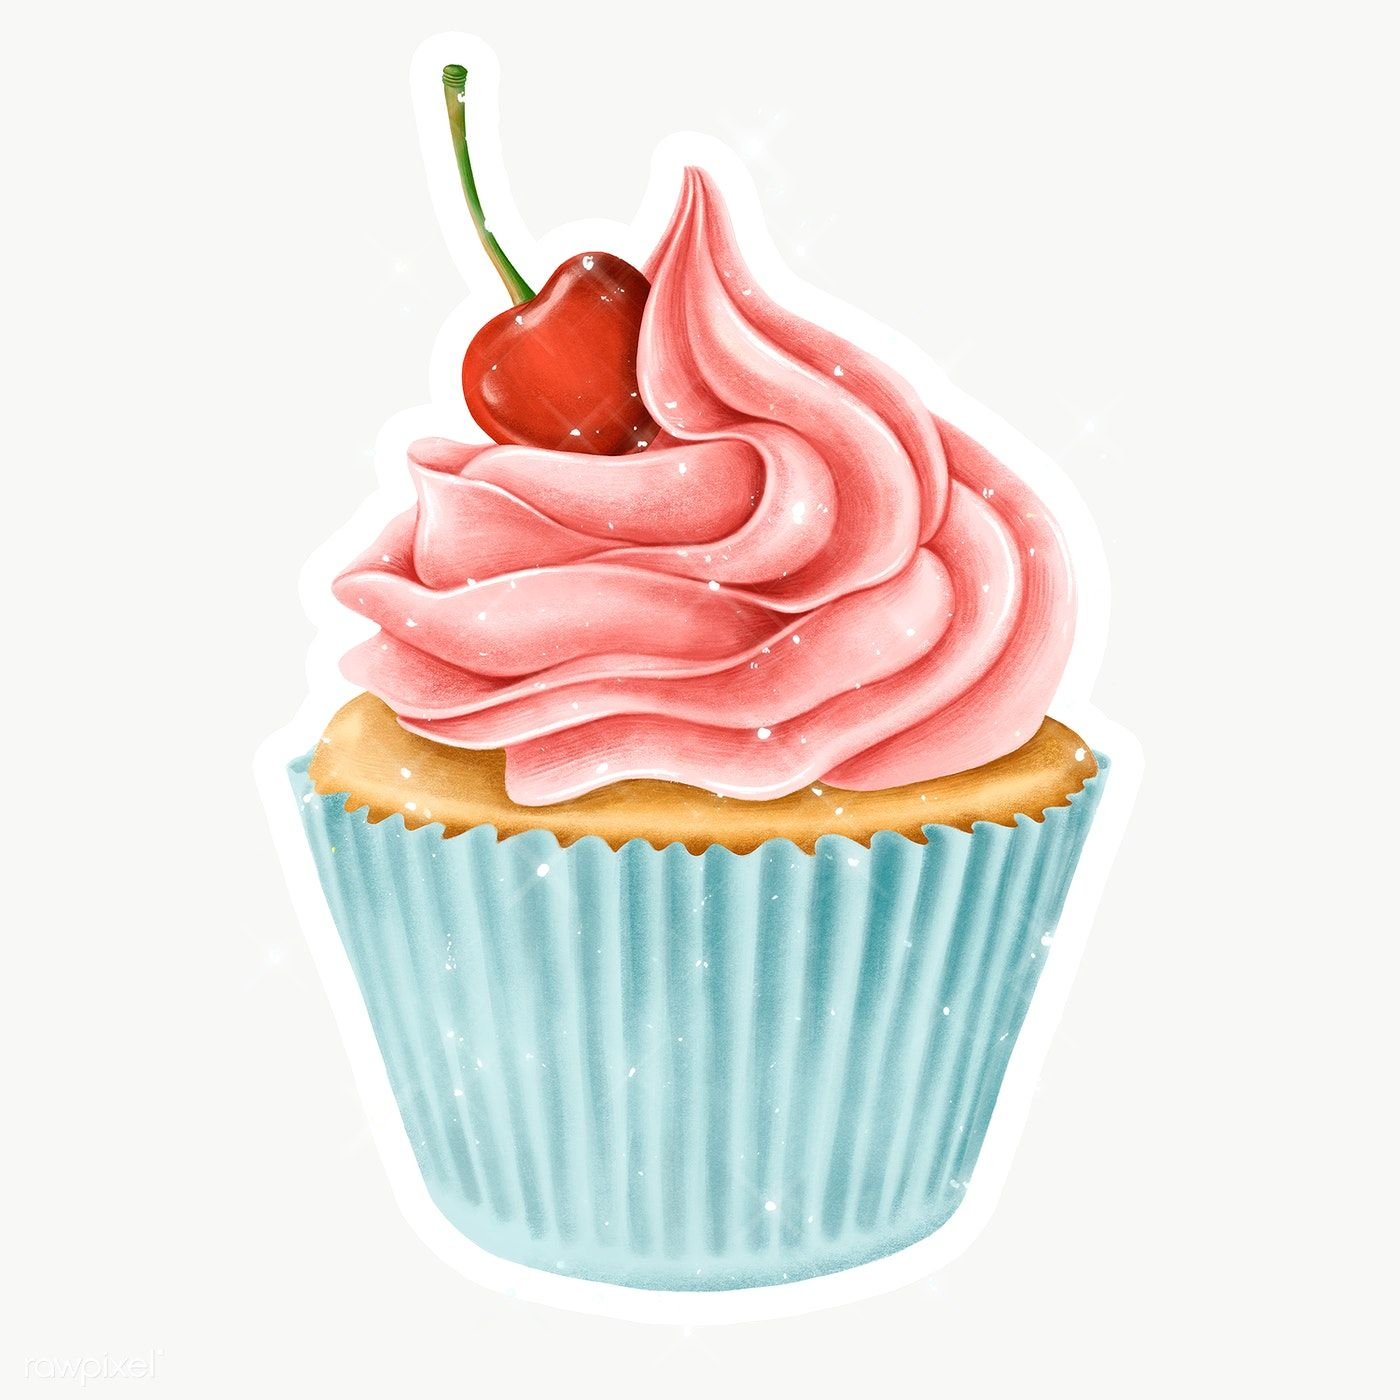 Cartoon Cupcake For Birthday Decoration Dessert Clipart Food Bakery Png And Vector With Transparent Background For Free Download Cartoon Cupcakes Cartoon Birthday Cake Happy Birthday Wishes Images